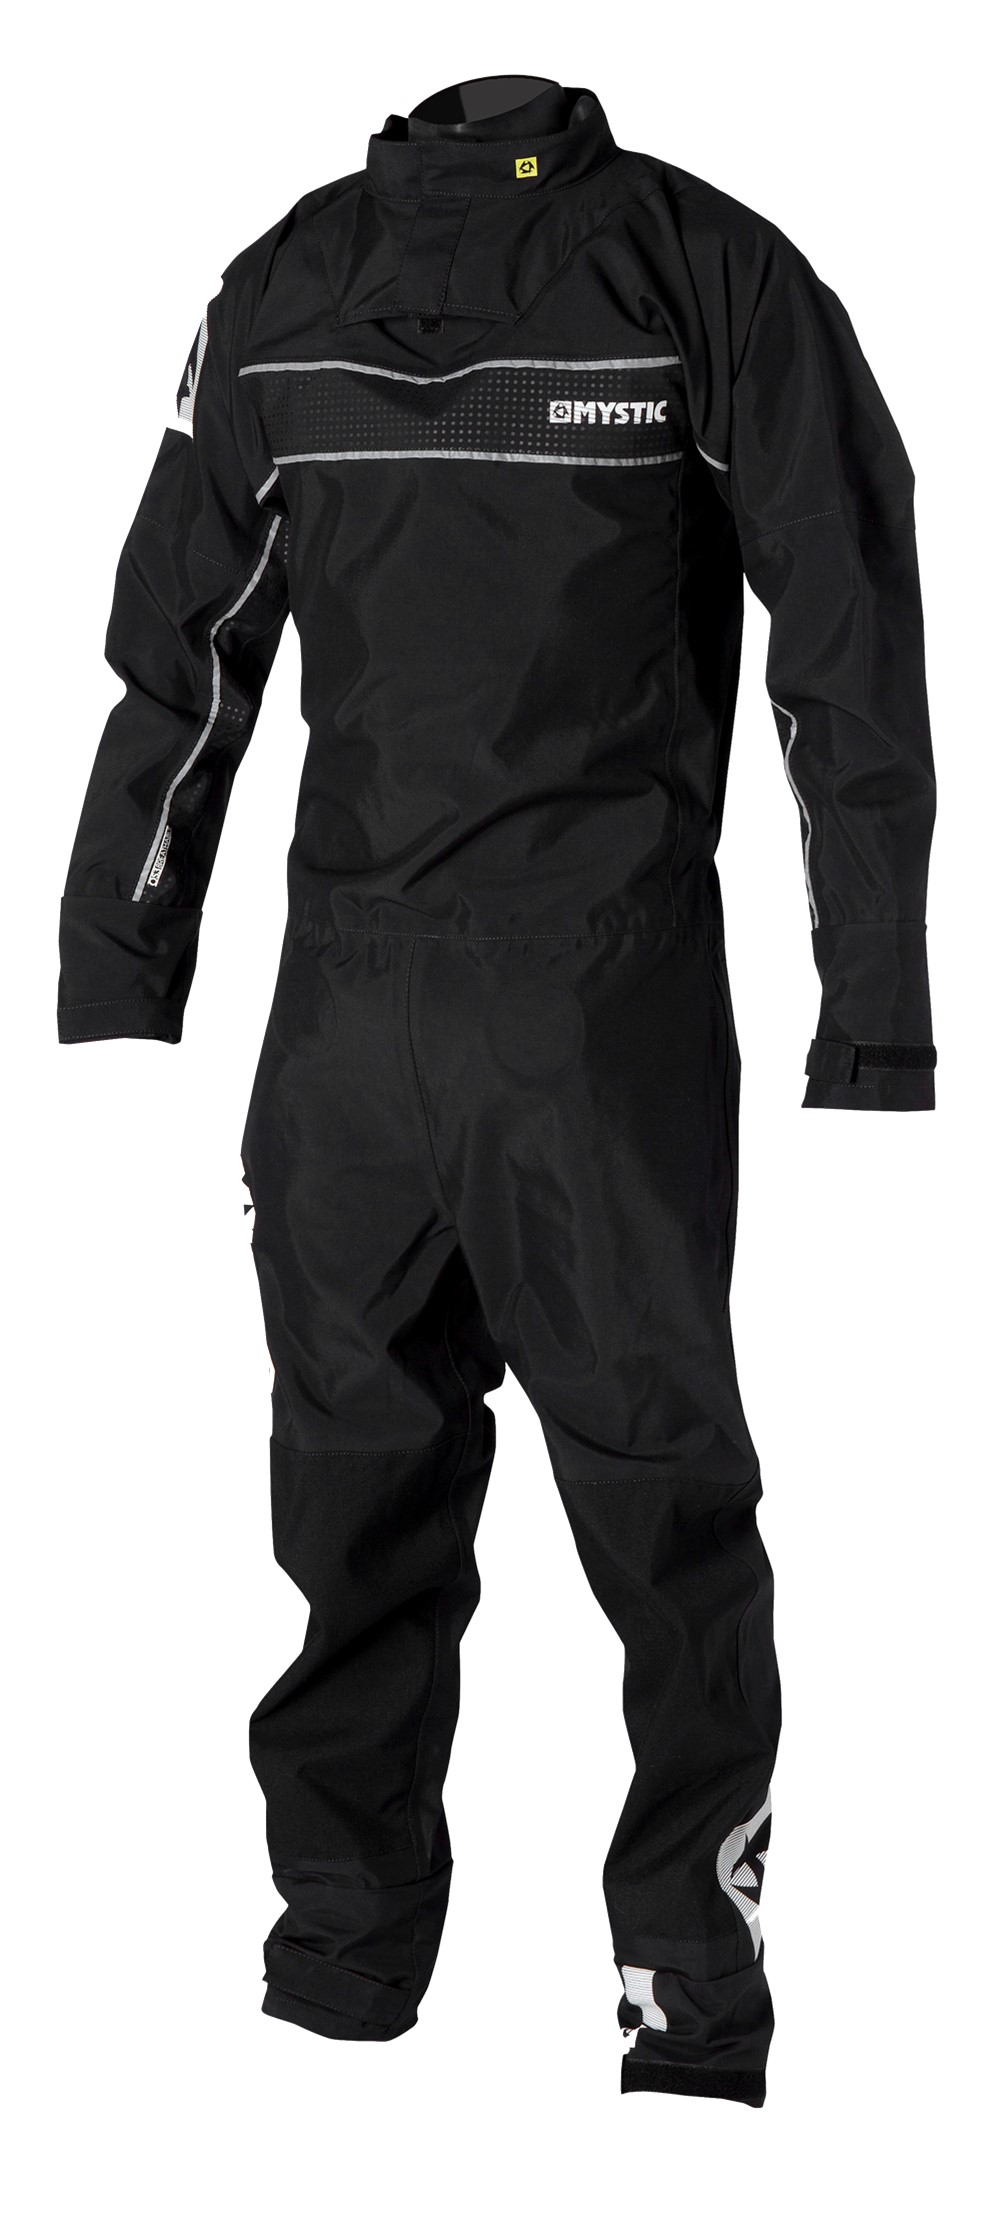 FORCE DRYSUIT - BLACK - XSMALL MYSTIC 2016